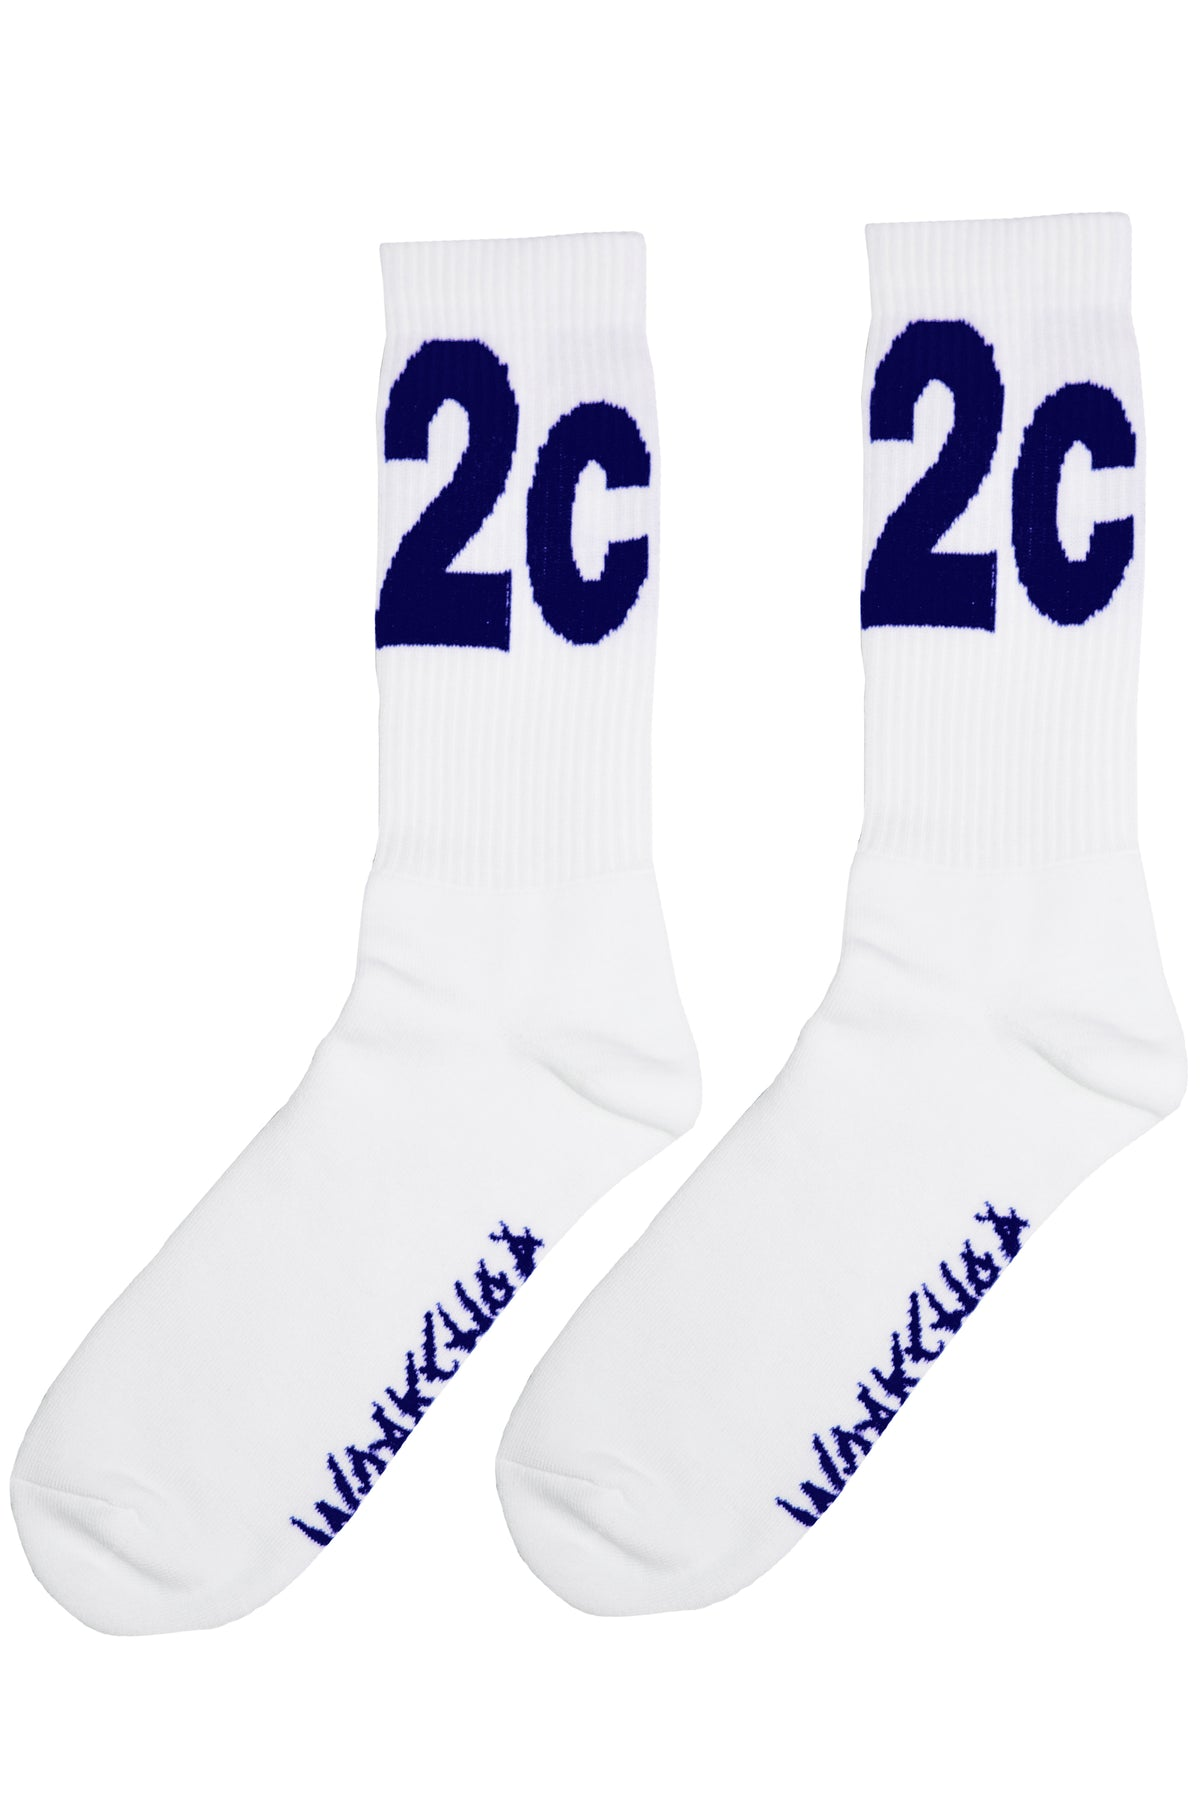 032c WWB 'MAX' Socks White/Navy - 032c